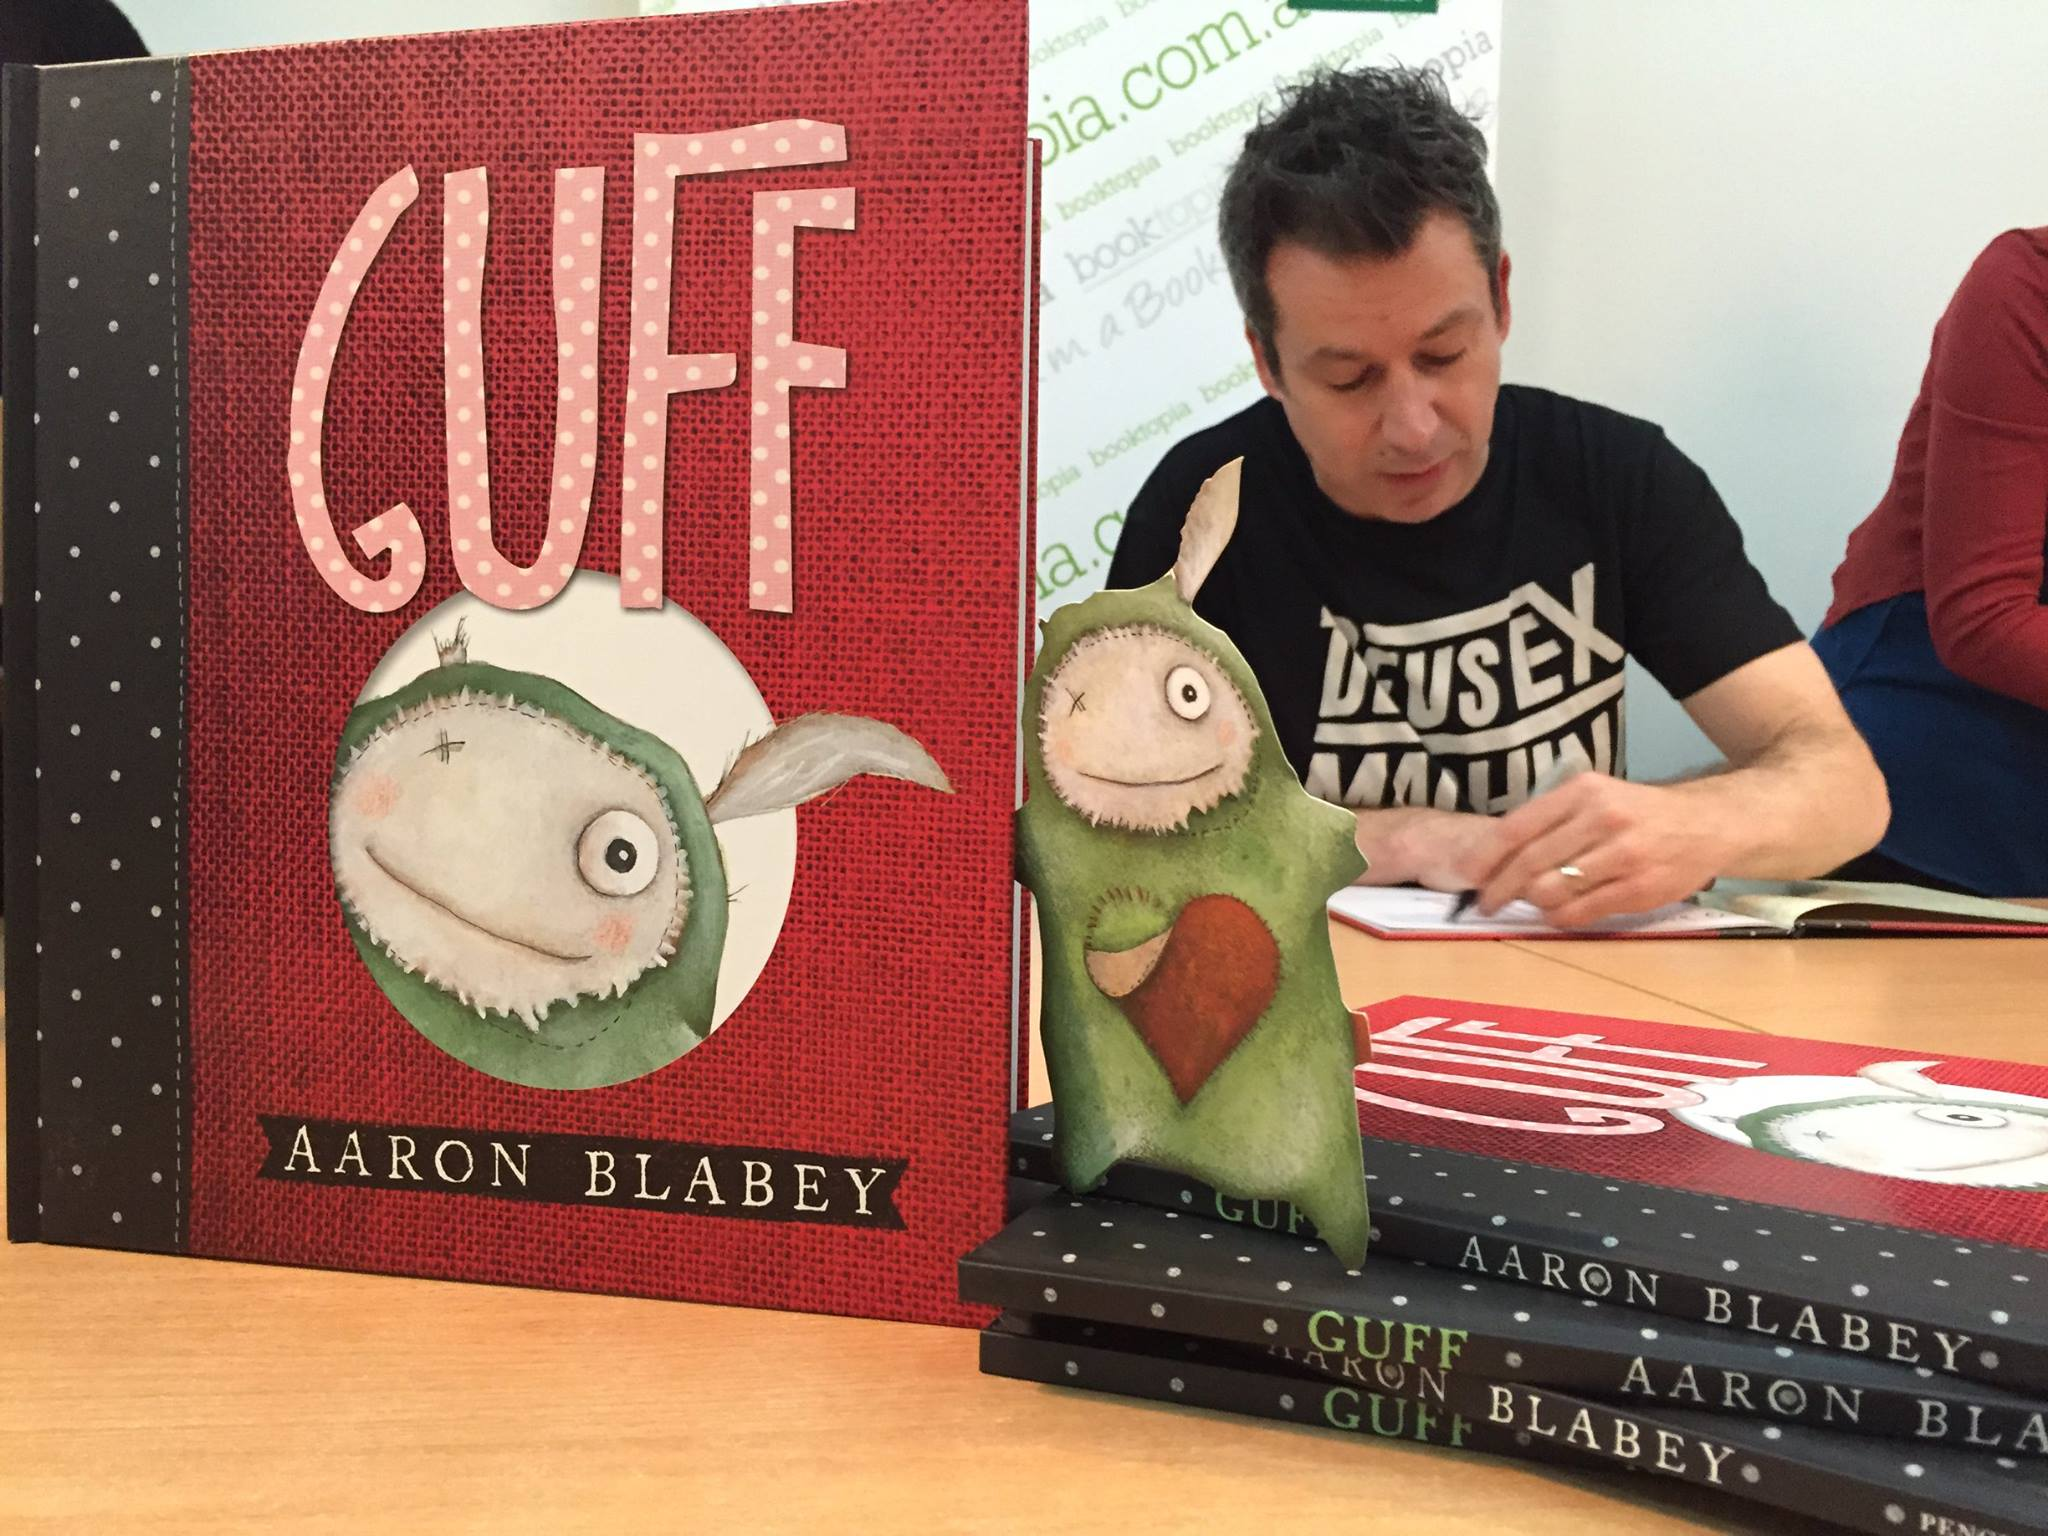 Aaron Blabey signing copies of Guff